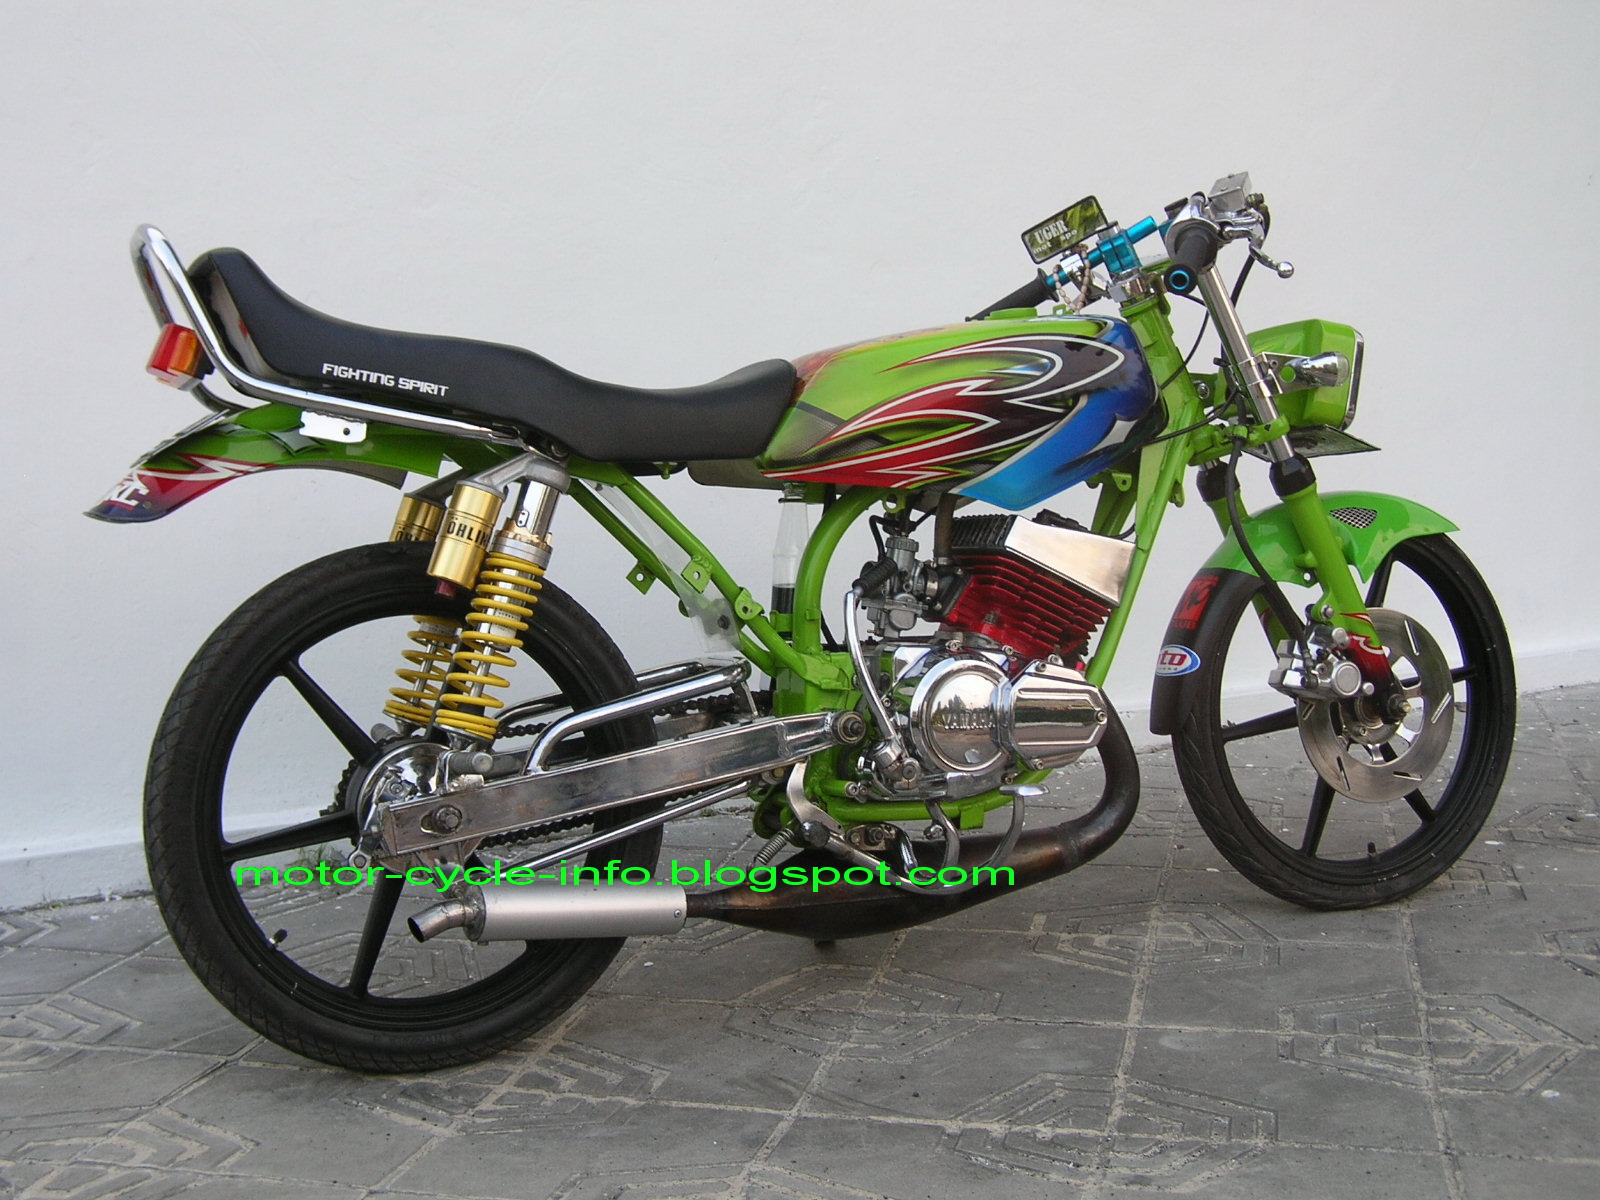 Rx King Modif Mio 29 rx king 2010 airbrush x